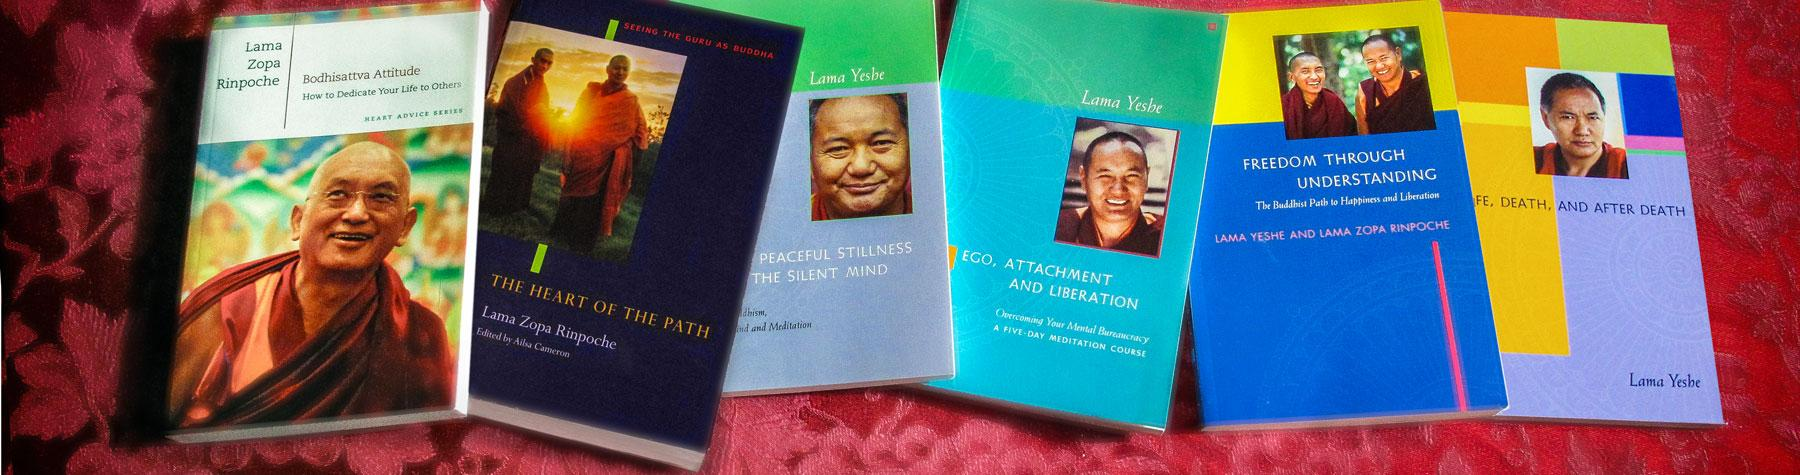 Lama Yeshe Wisdom Archive 84 Mustang Wiring Diagram Mass Air Flow Sensor Browse Lywa Books And Ebooks